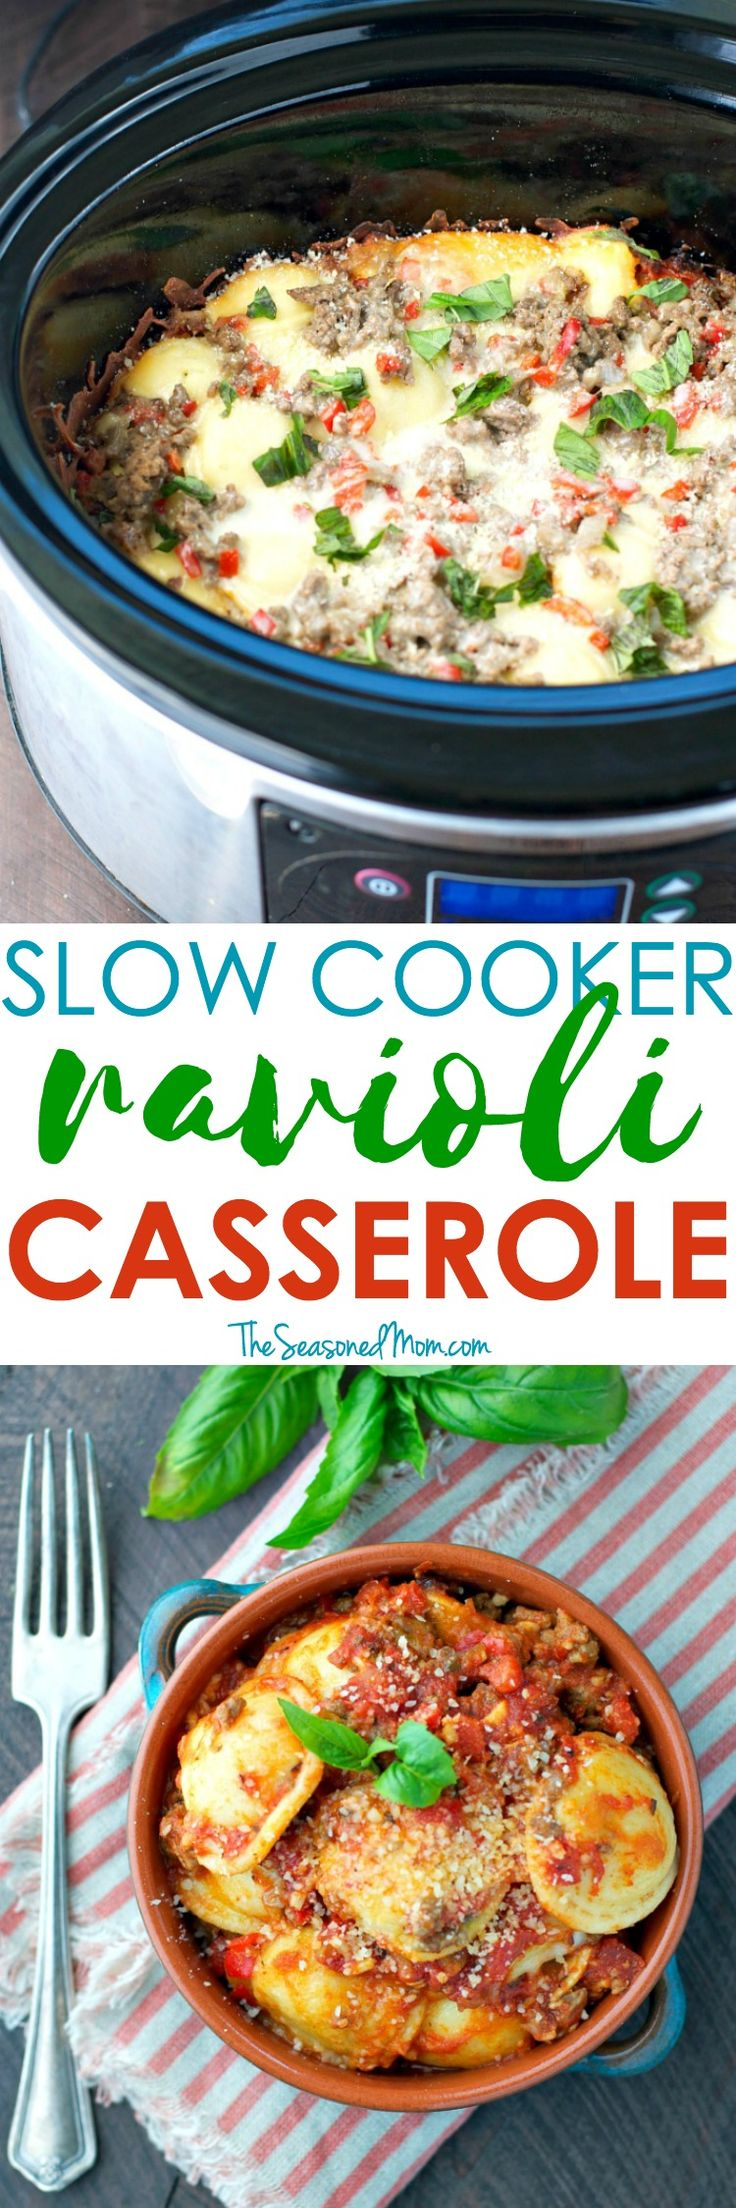 Easy Slow Cooker Recipes like this Ravioli Casserole are a busy mom's best…